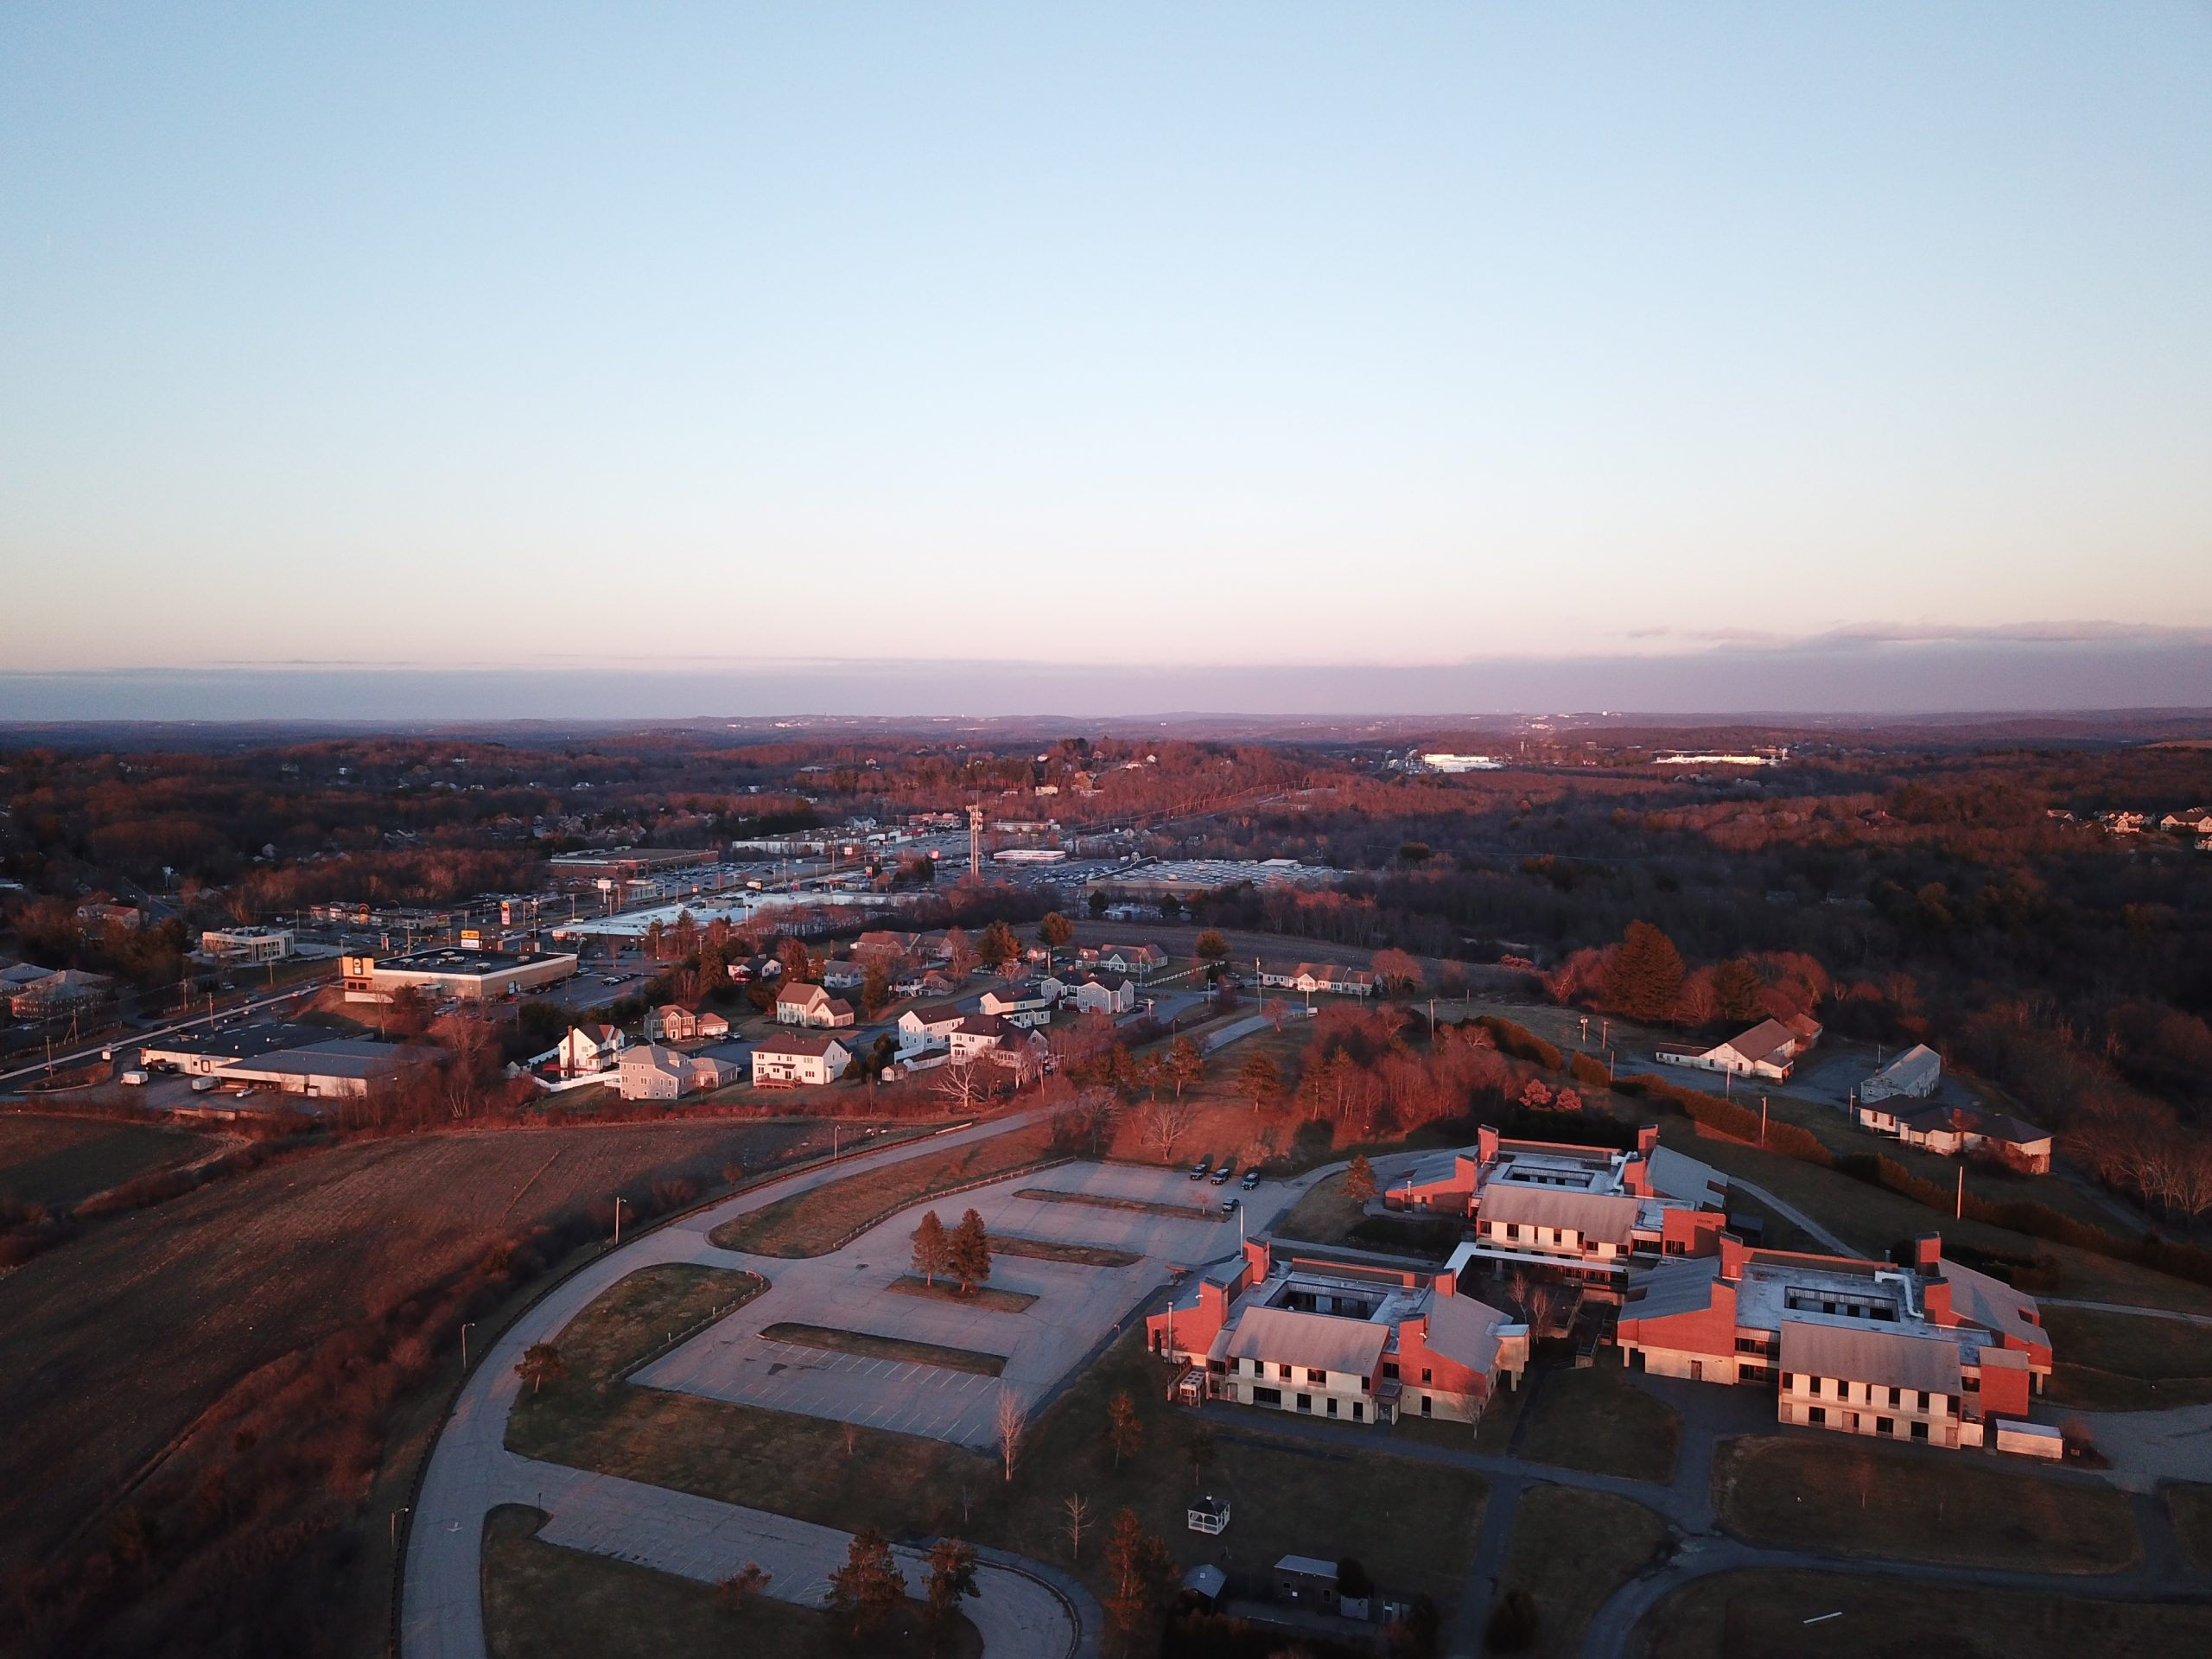 shrewsbury aerial photo of commercial real estate at sunset